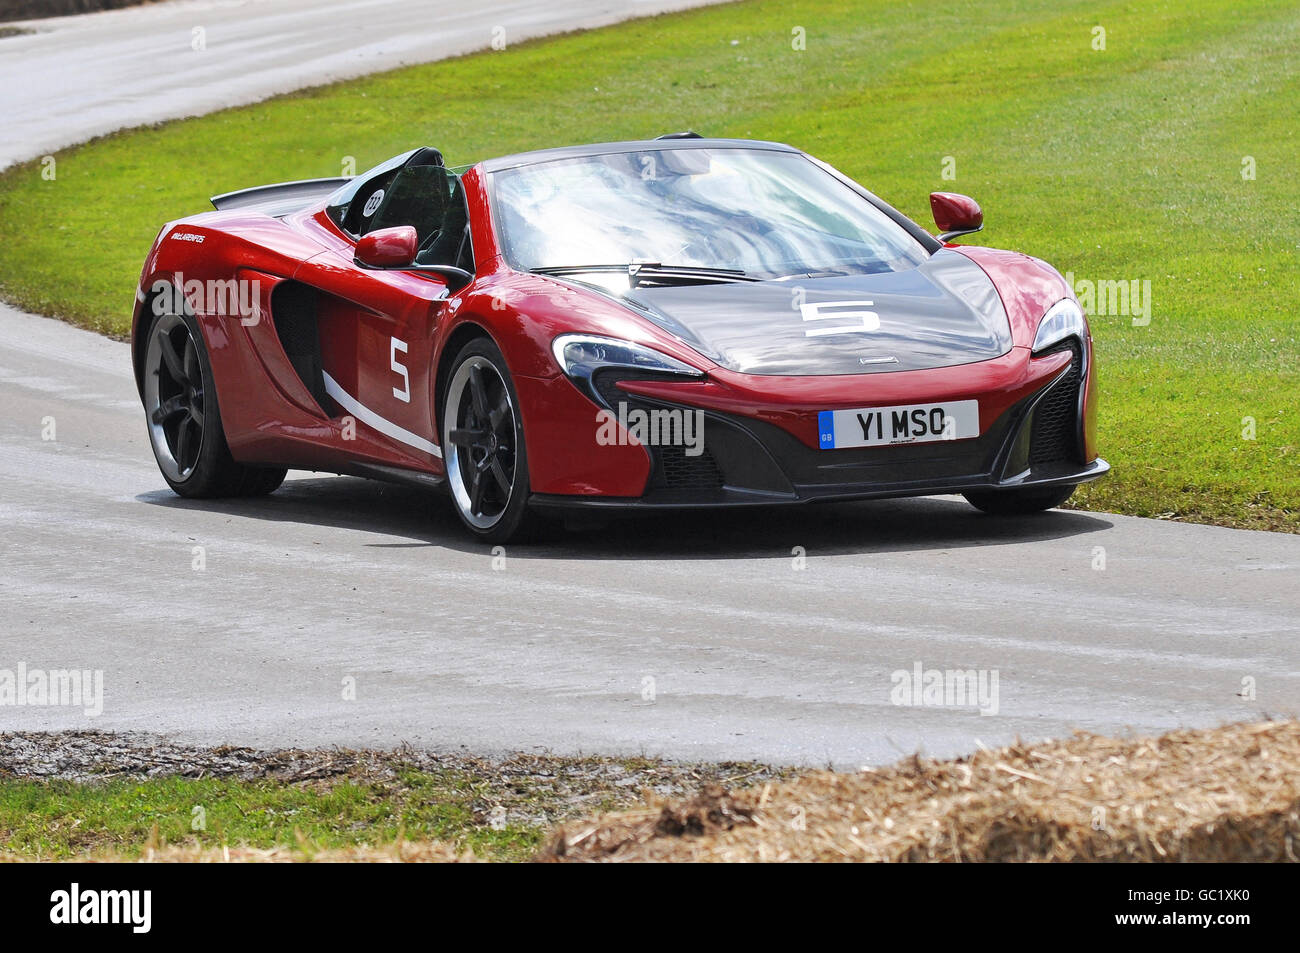 https://c8.alamy.com/comp/GC1XK0/mclaren-650s-can-am-at-the-goodwood-festival-of-speed-2016-GC1XK0.jpg